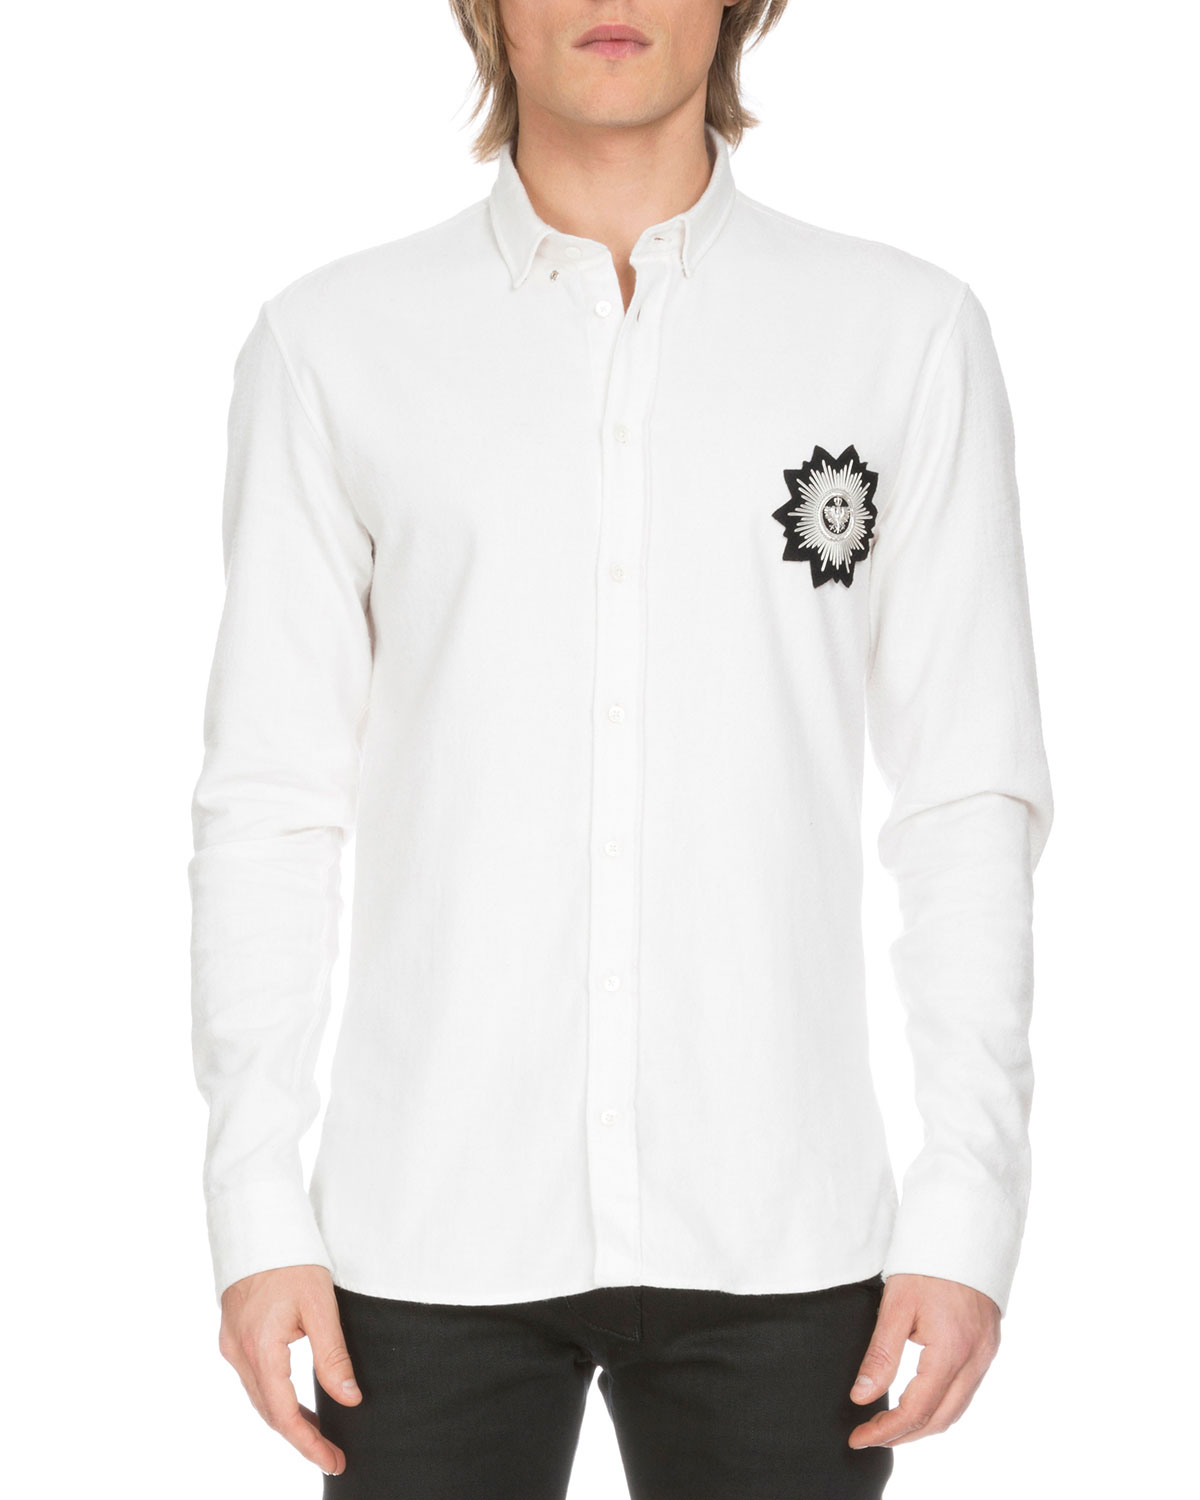 Cotton Sport Shirt w/Embroidered Patch, White